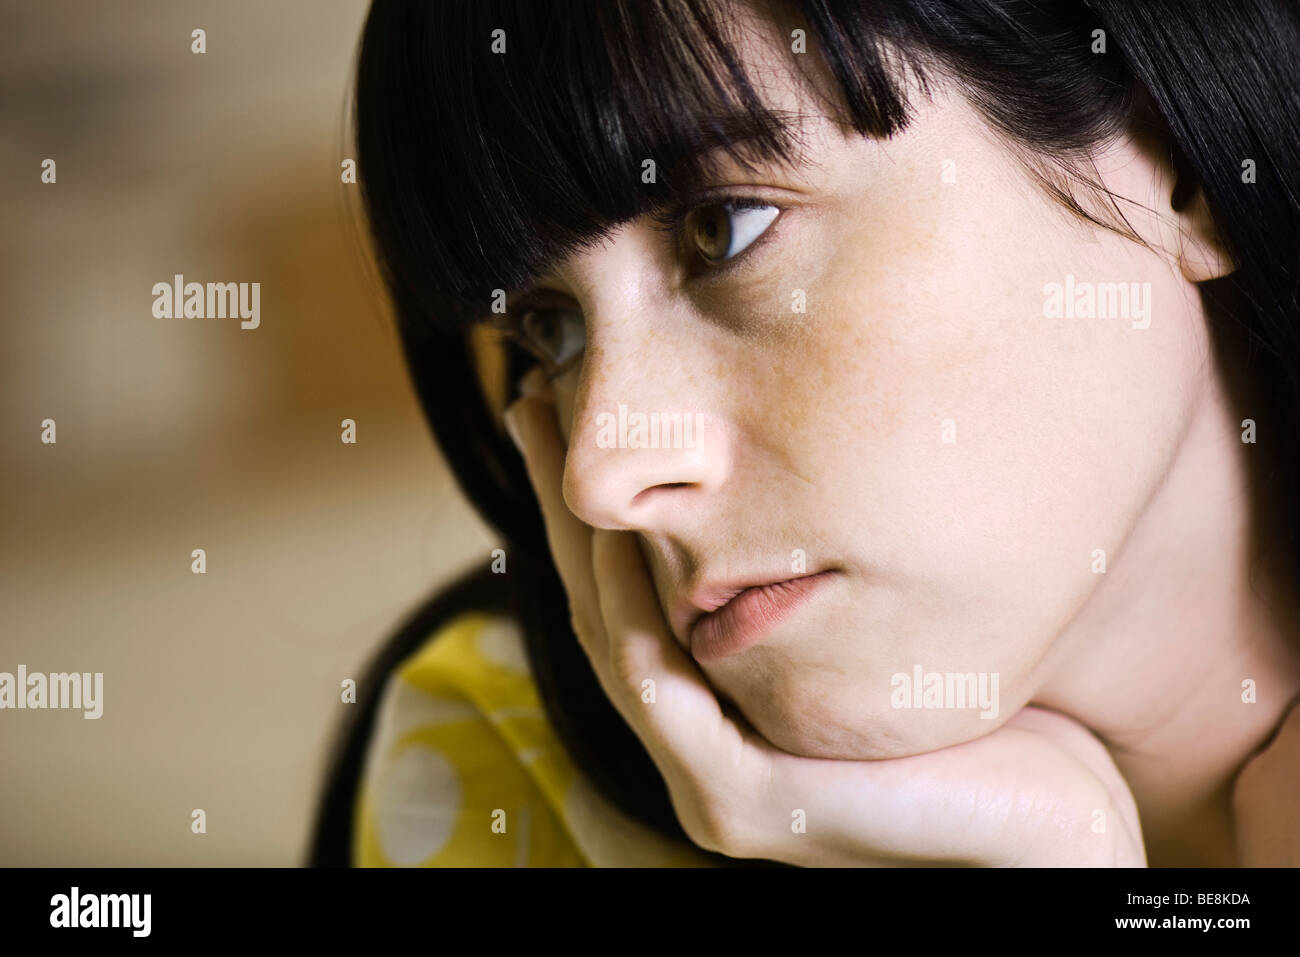 Young woman contemplatively looking away - Stock Image